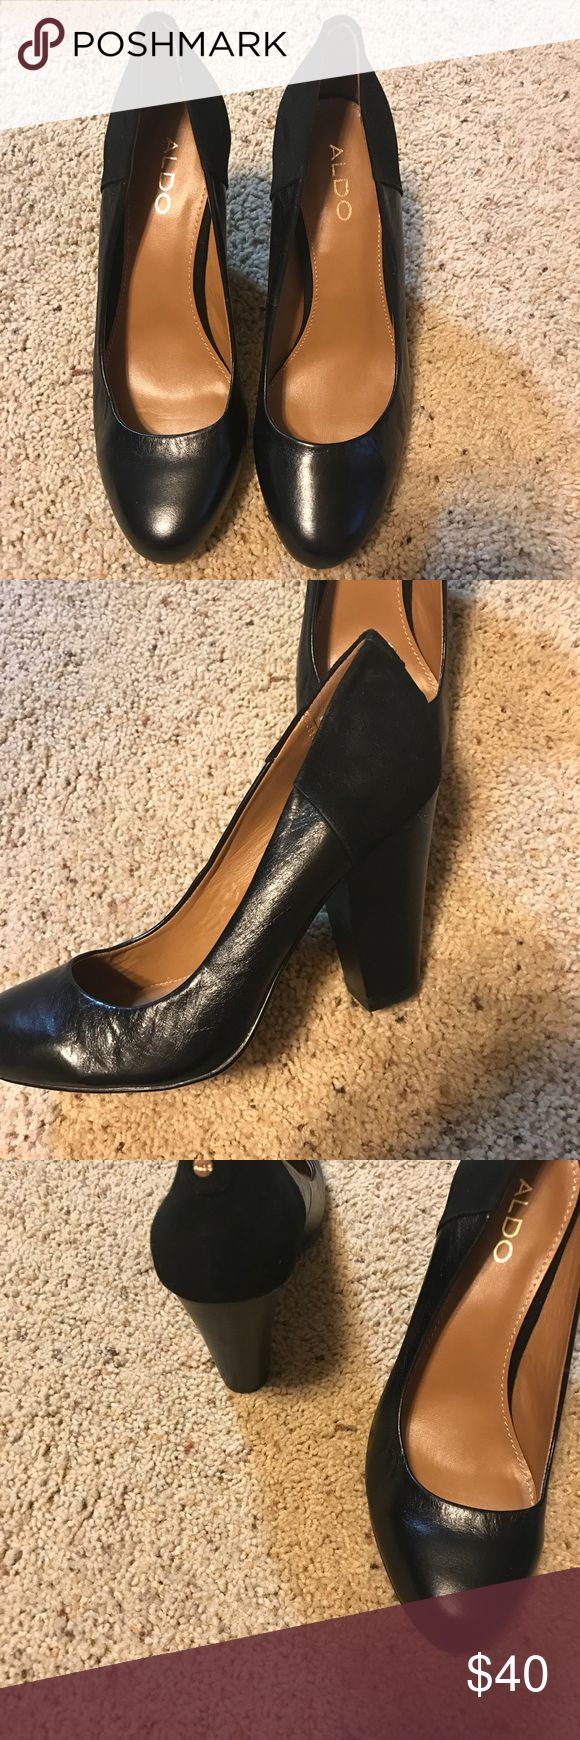 NWOB Aldo Black leather shoes Classic all leather court shoes with more of a rounded toe, thick heel and suede design on back of shoe.   Brand new, unfortunately I don't have the box. Aldo Shoes Heels